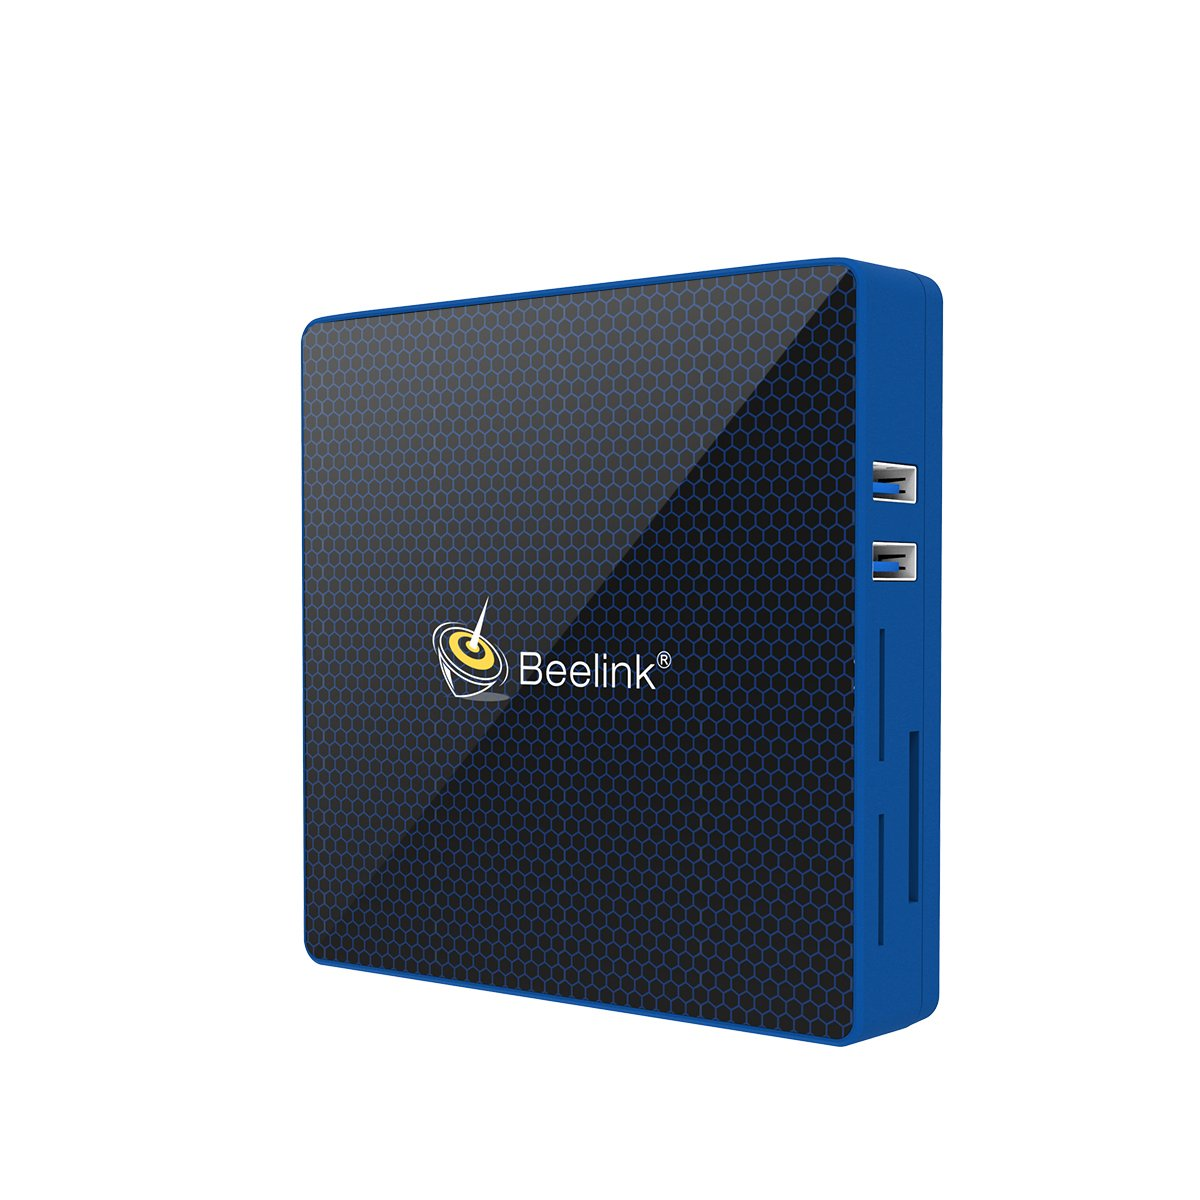 Beelink M1 Mini PC RAM 6GB ROM 64GB Intel Apollo Lake Celeron N3450 Graphics 500 Sistema Windows Pantalla de Doble Frecuencia SSD Expandible 2.4G + 5.8G WiFi 1000Mbps BT4.0